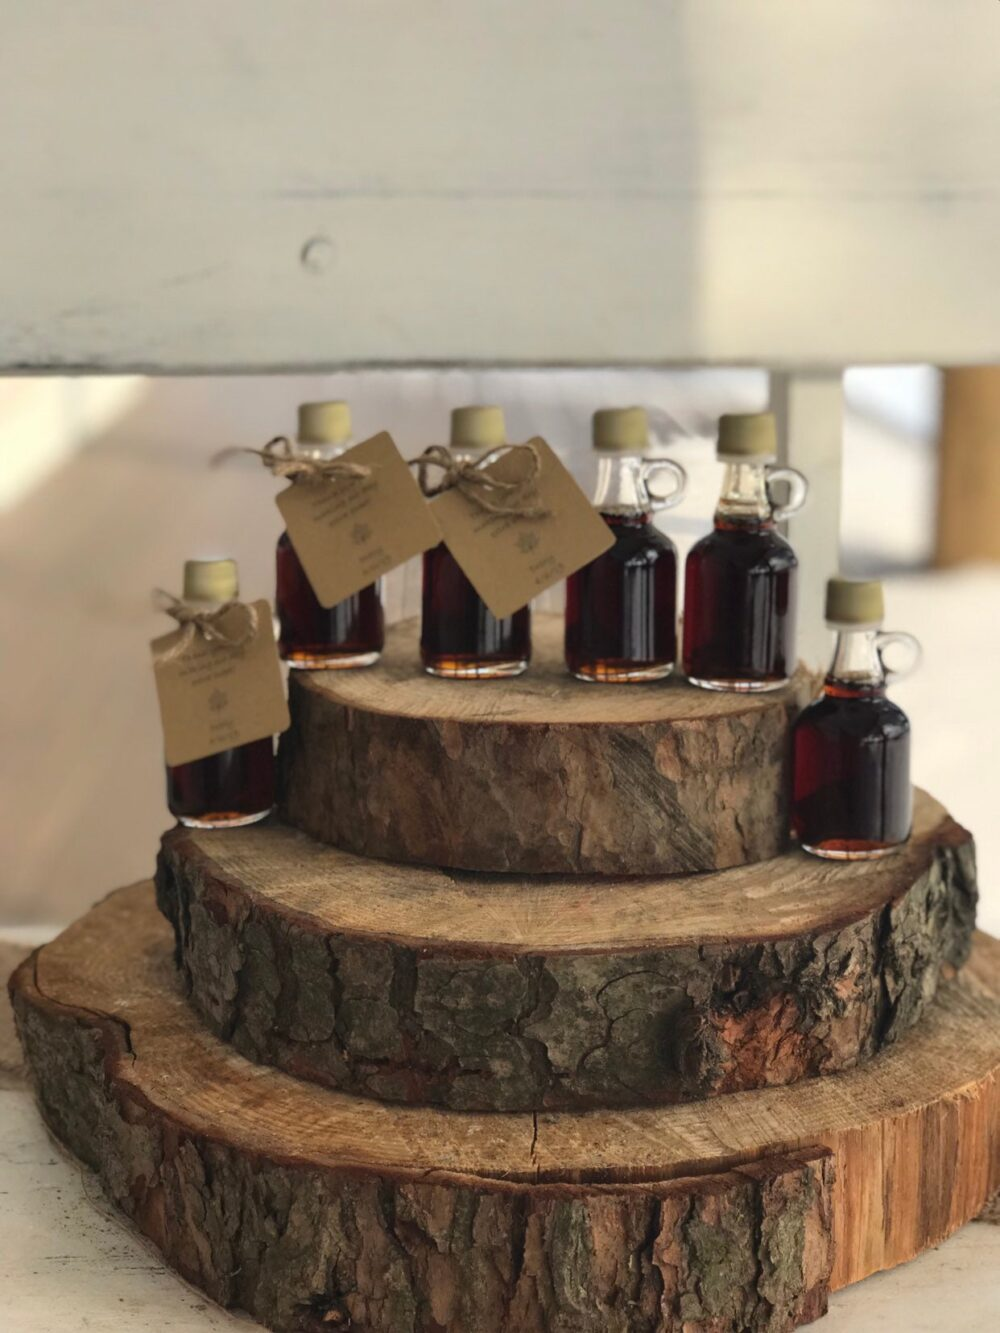 70, Organic Maple Syrup Favors, Bridal Shower Favors, Love Is Sweet, Fall Wedding Favors, Personalized Favors, Pure Syrup, Baby Favors